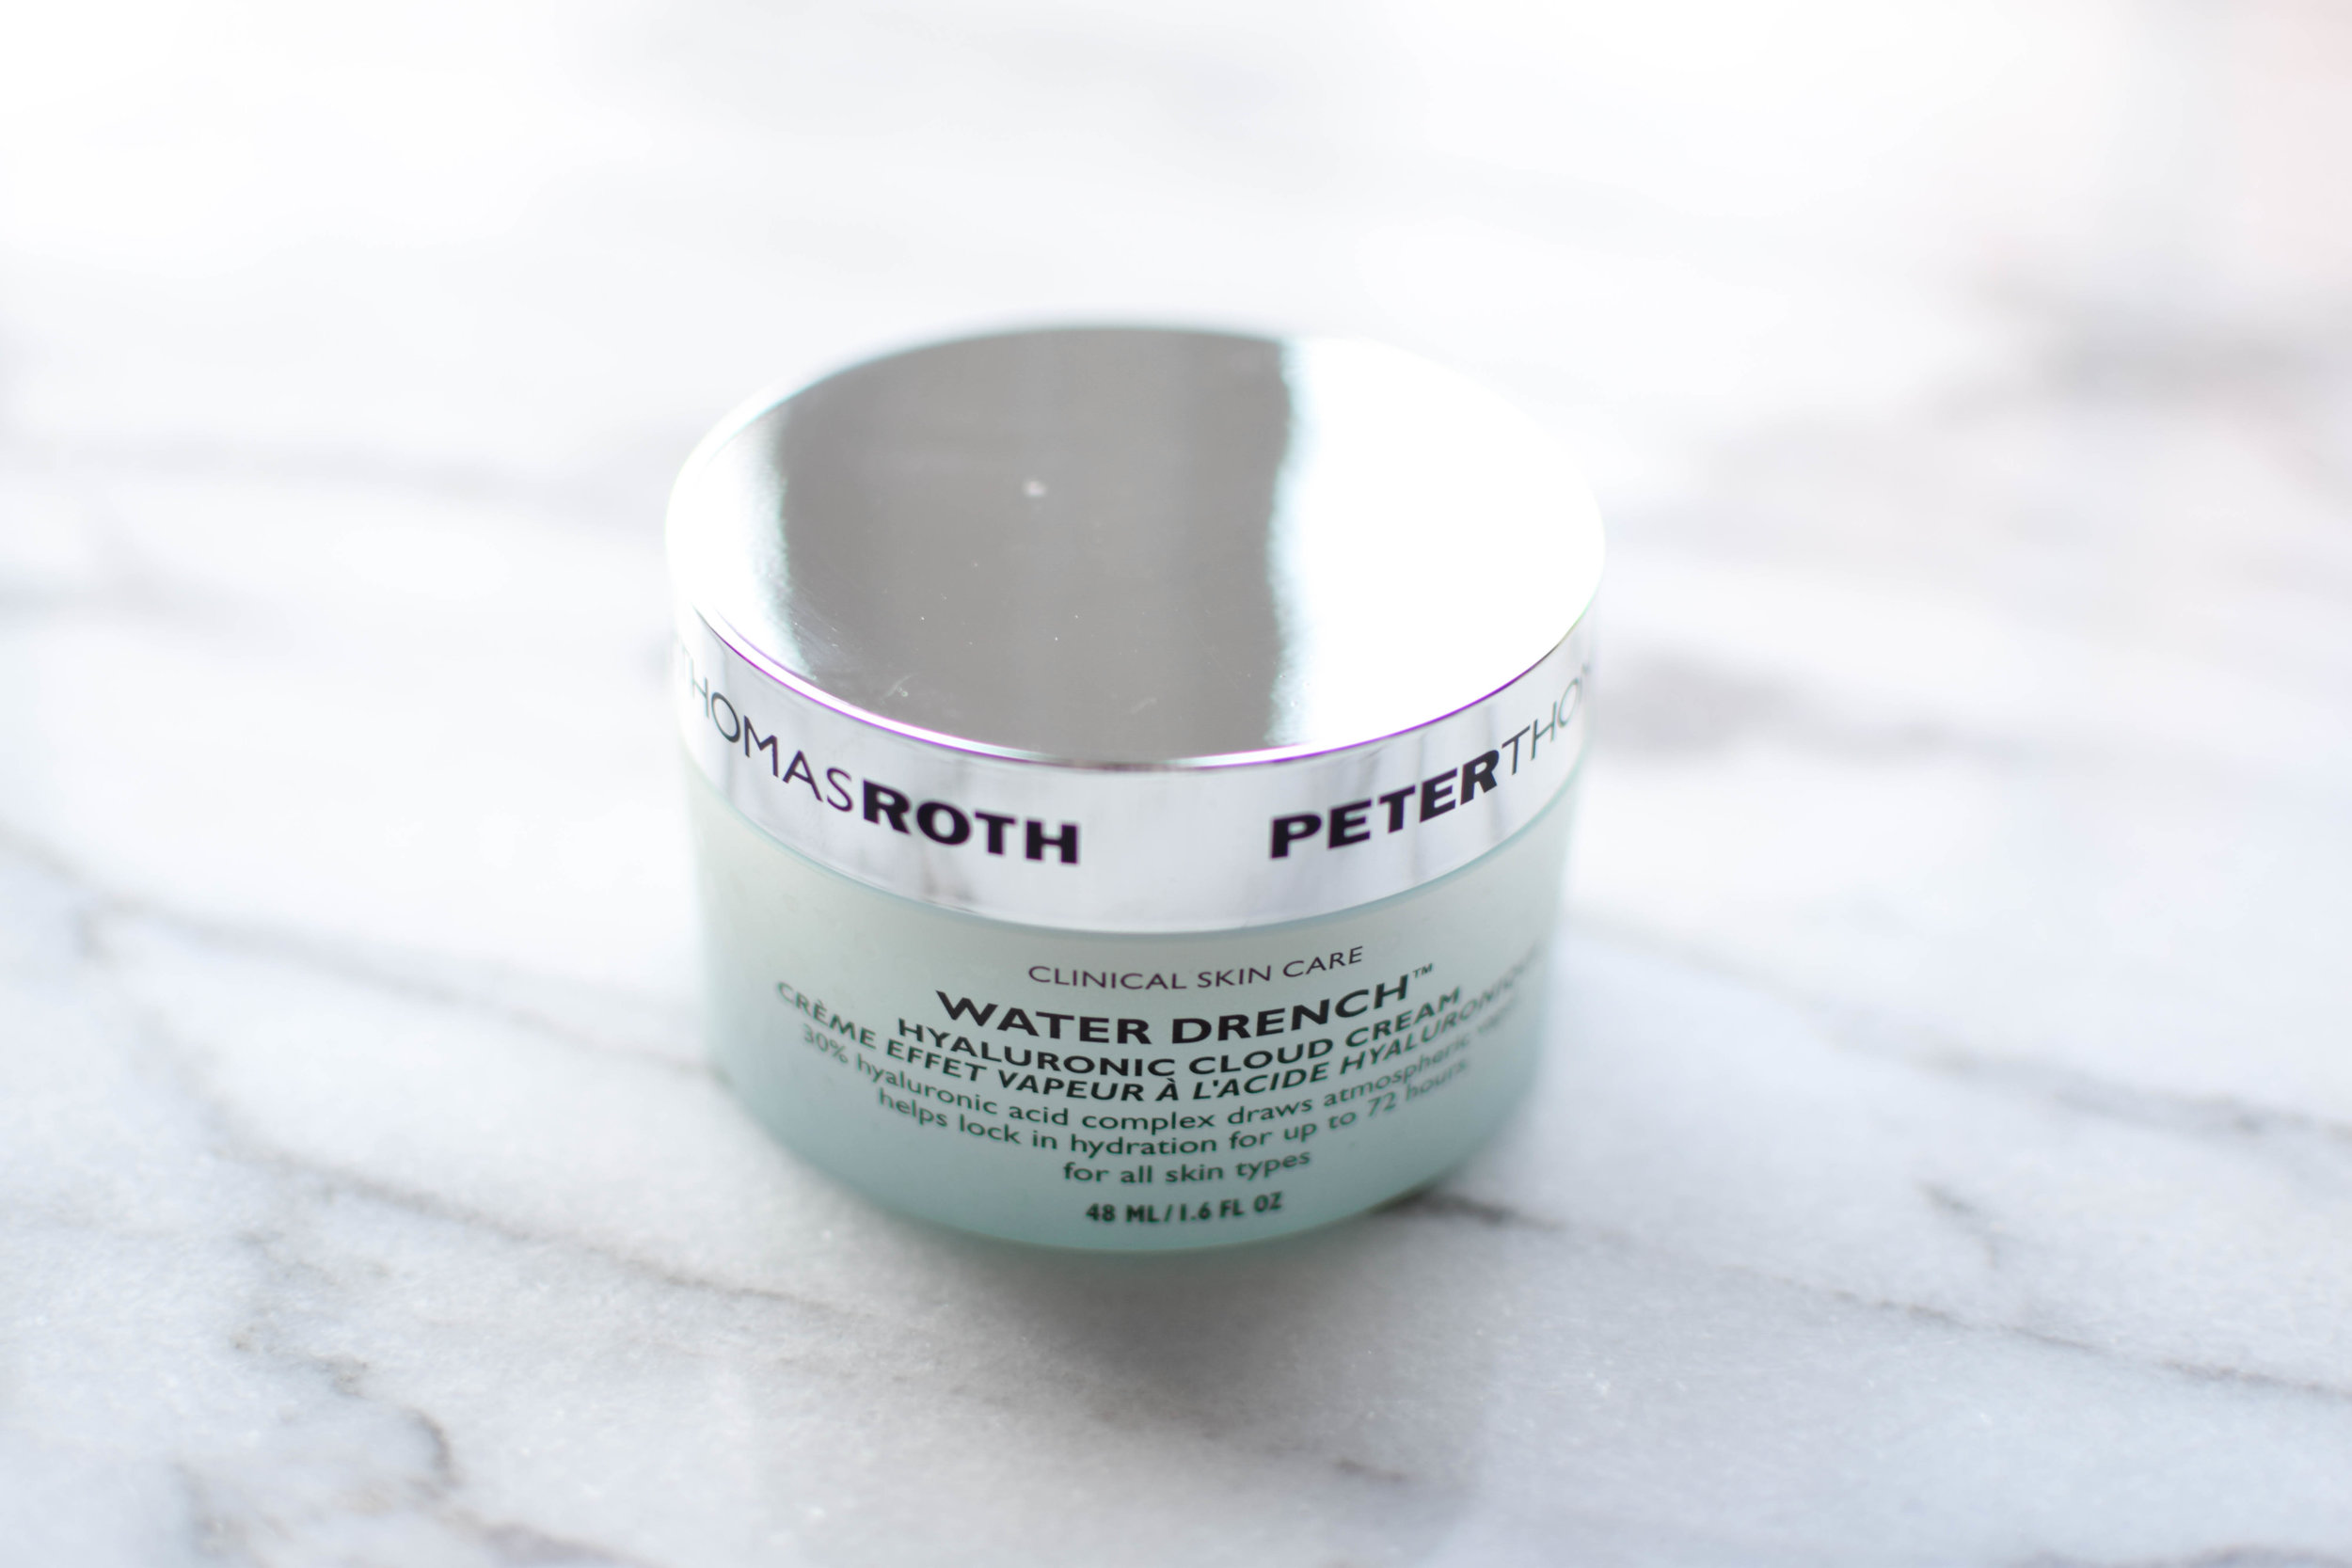 Sephora VIB Sale Buys: The Review | Pine Barren Beauty | Peter Thomas Roth Water Drench Hyaluronic Cloud Cream Review, Peter Thomas Roth Review, skincare review, skincare must have, must have moisturizer